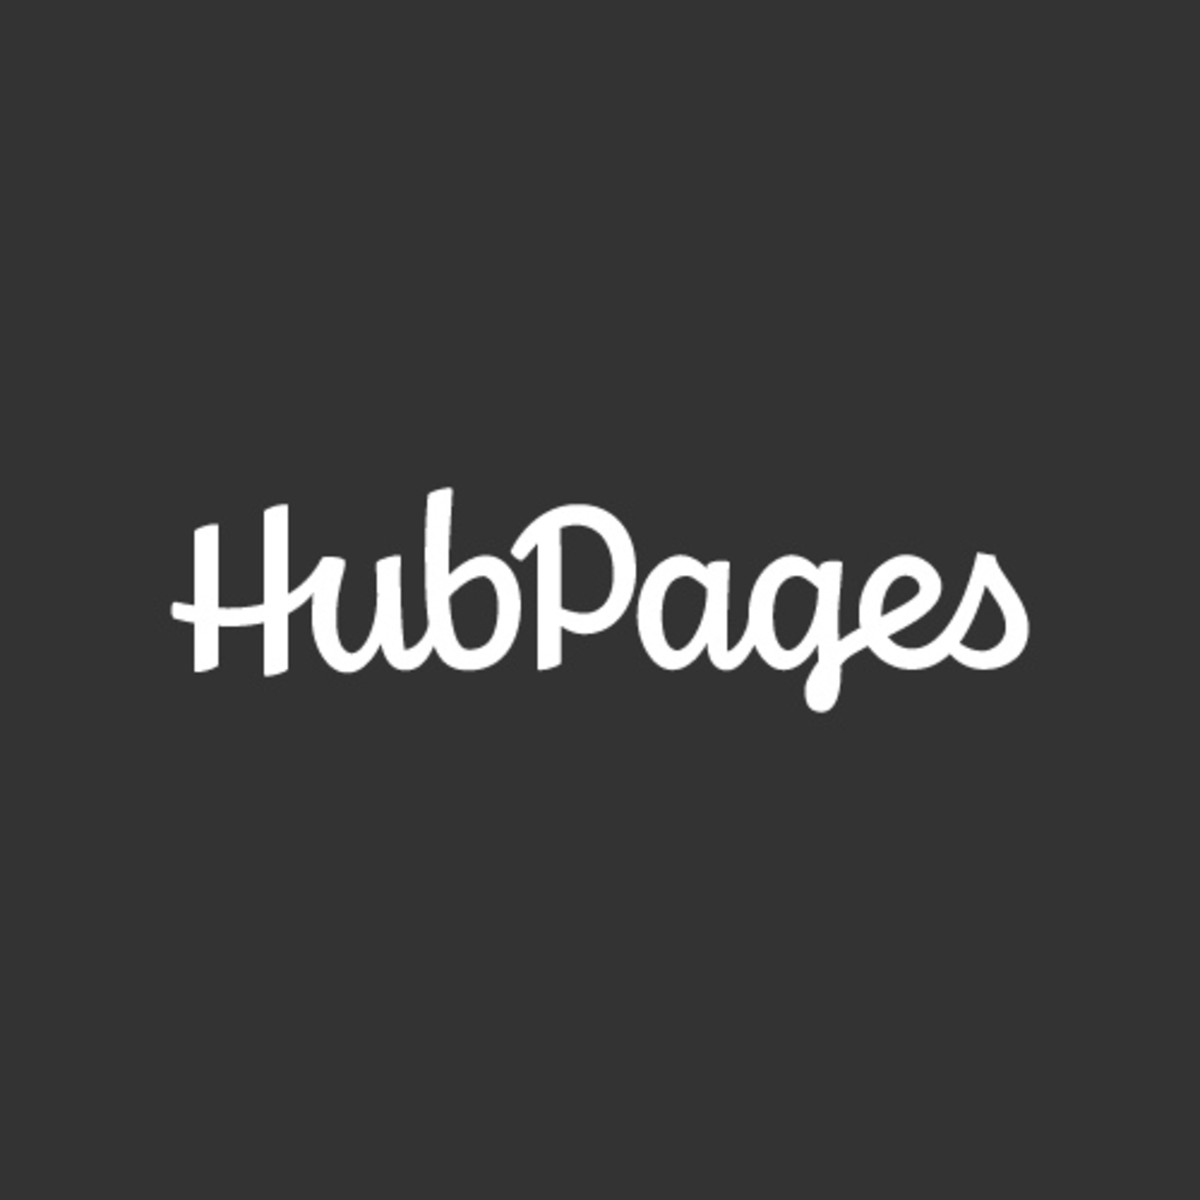 How Many Page Views Did it Take to Reach My First Hubpages $50 Payout?